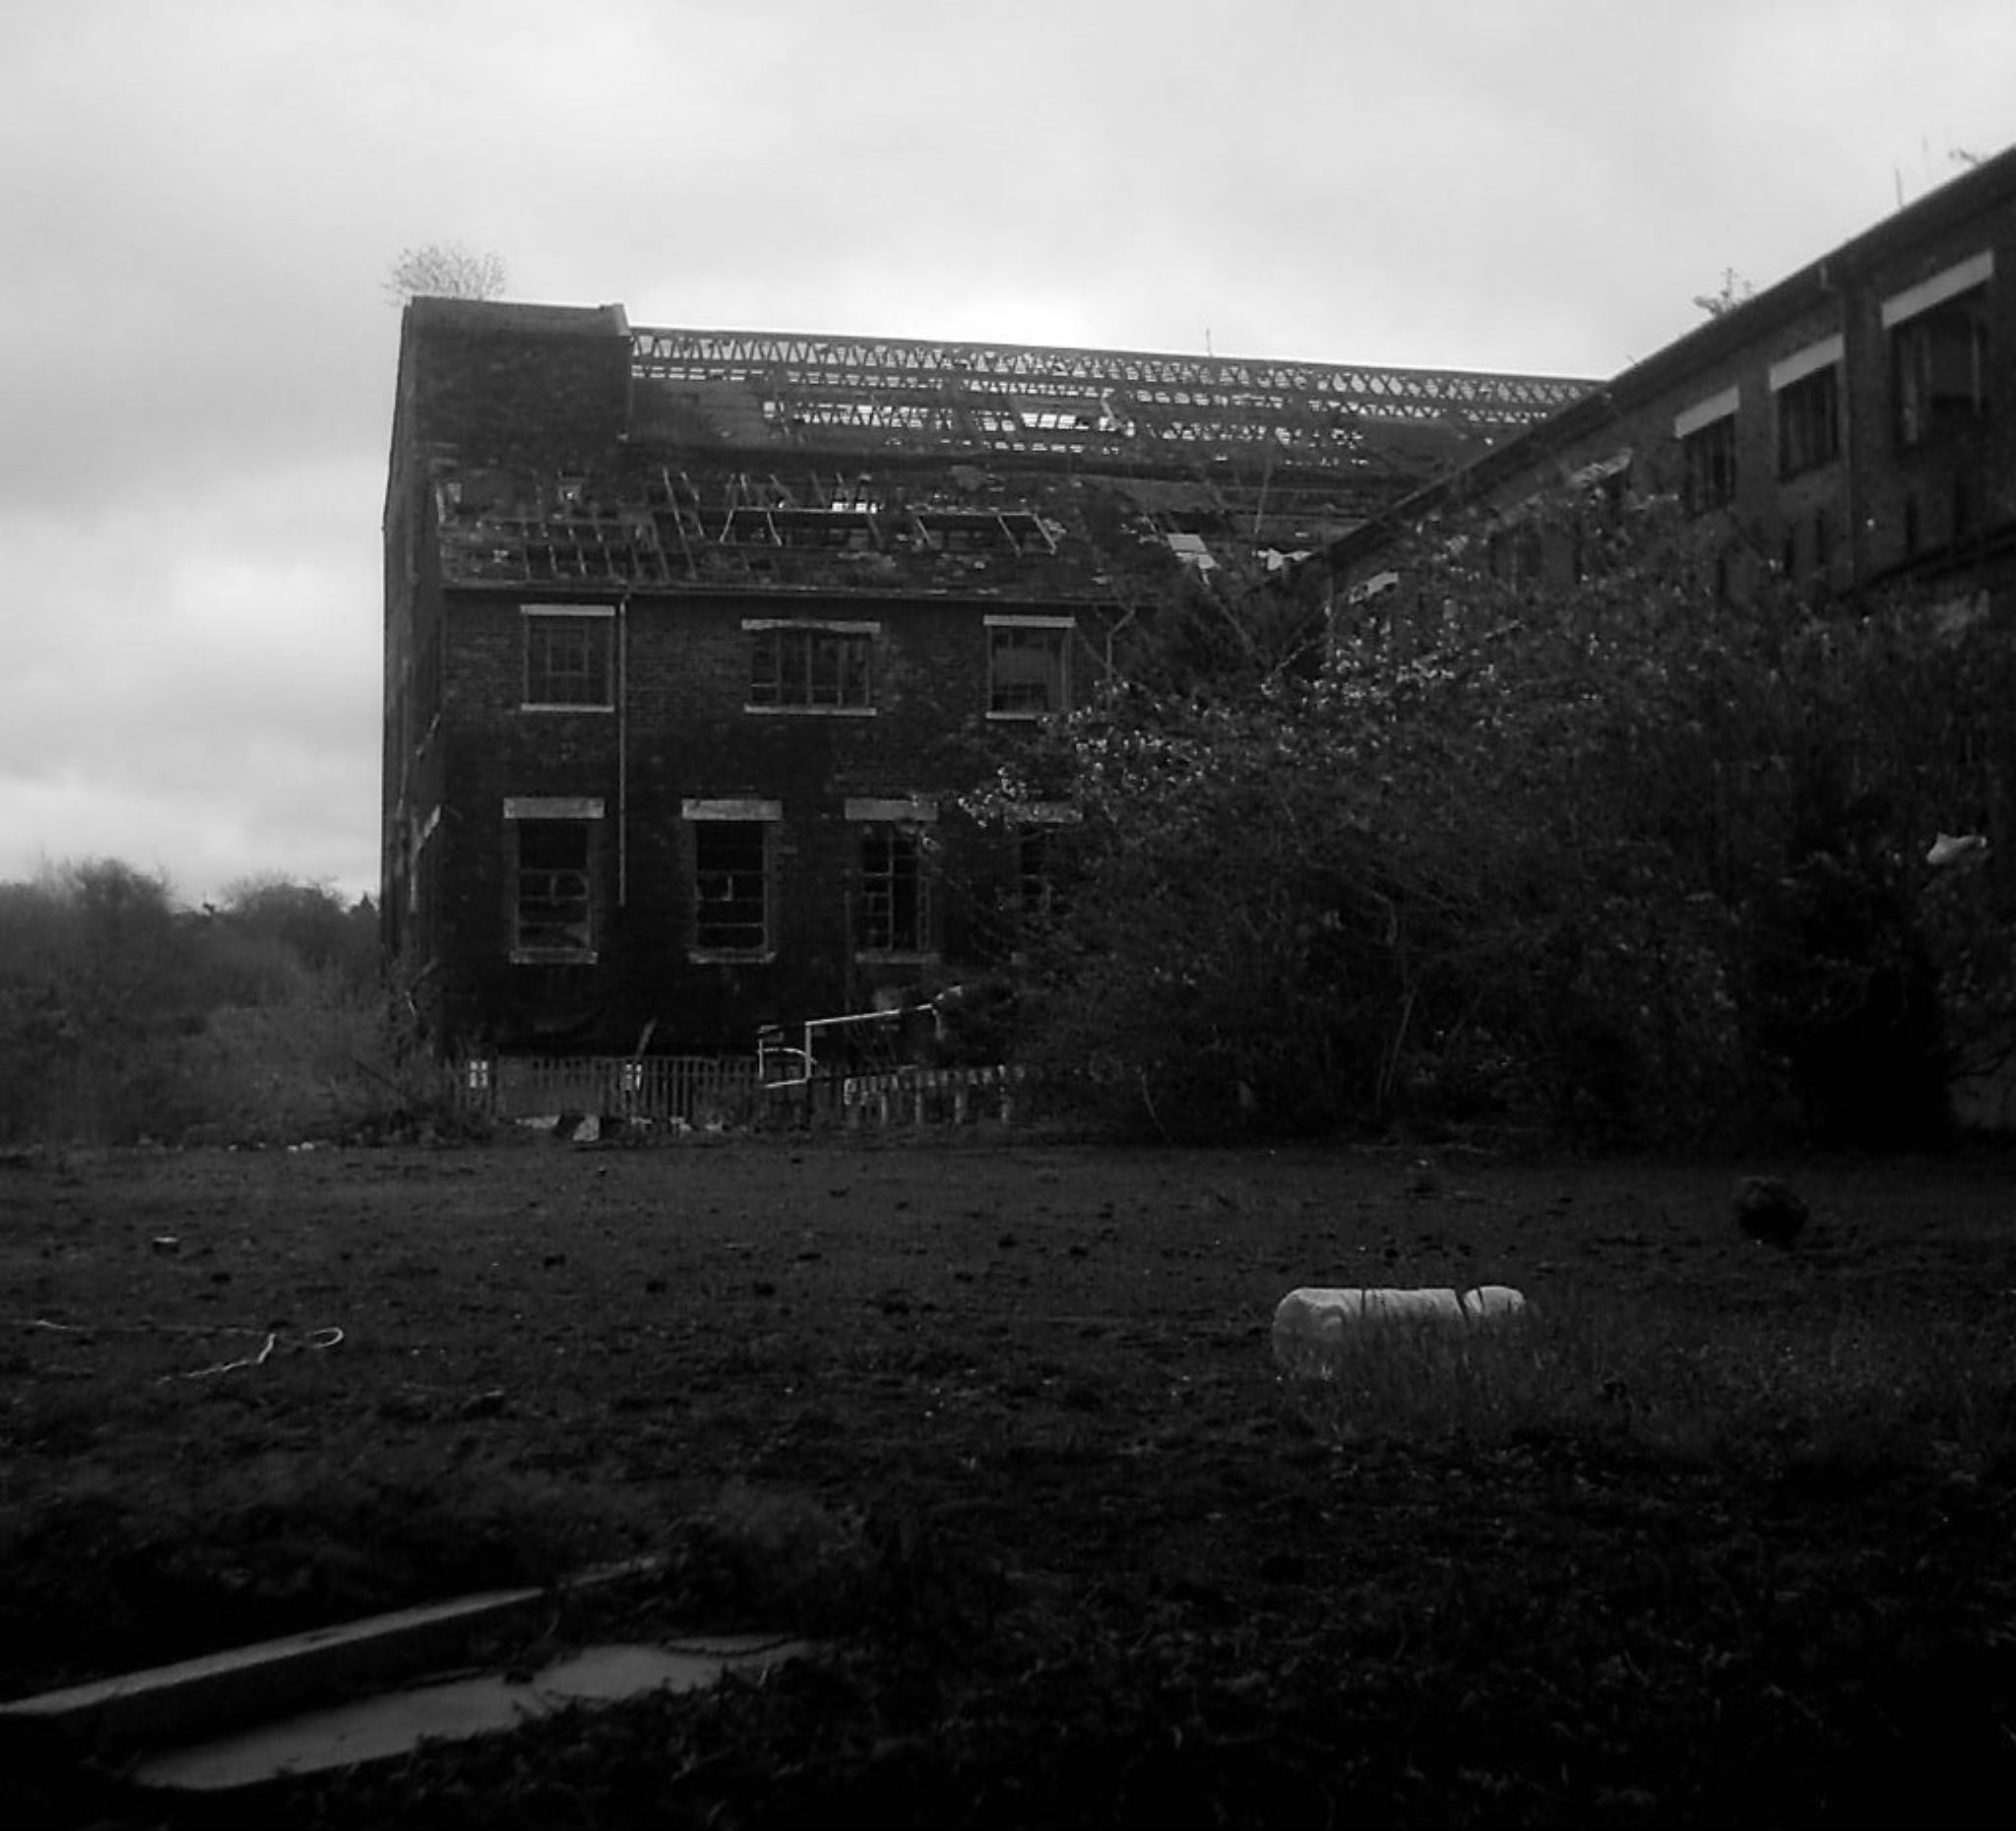 old royal doulton factory by chris.adams.3557